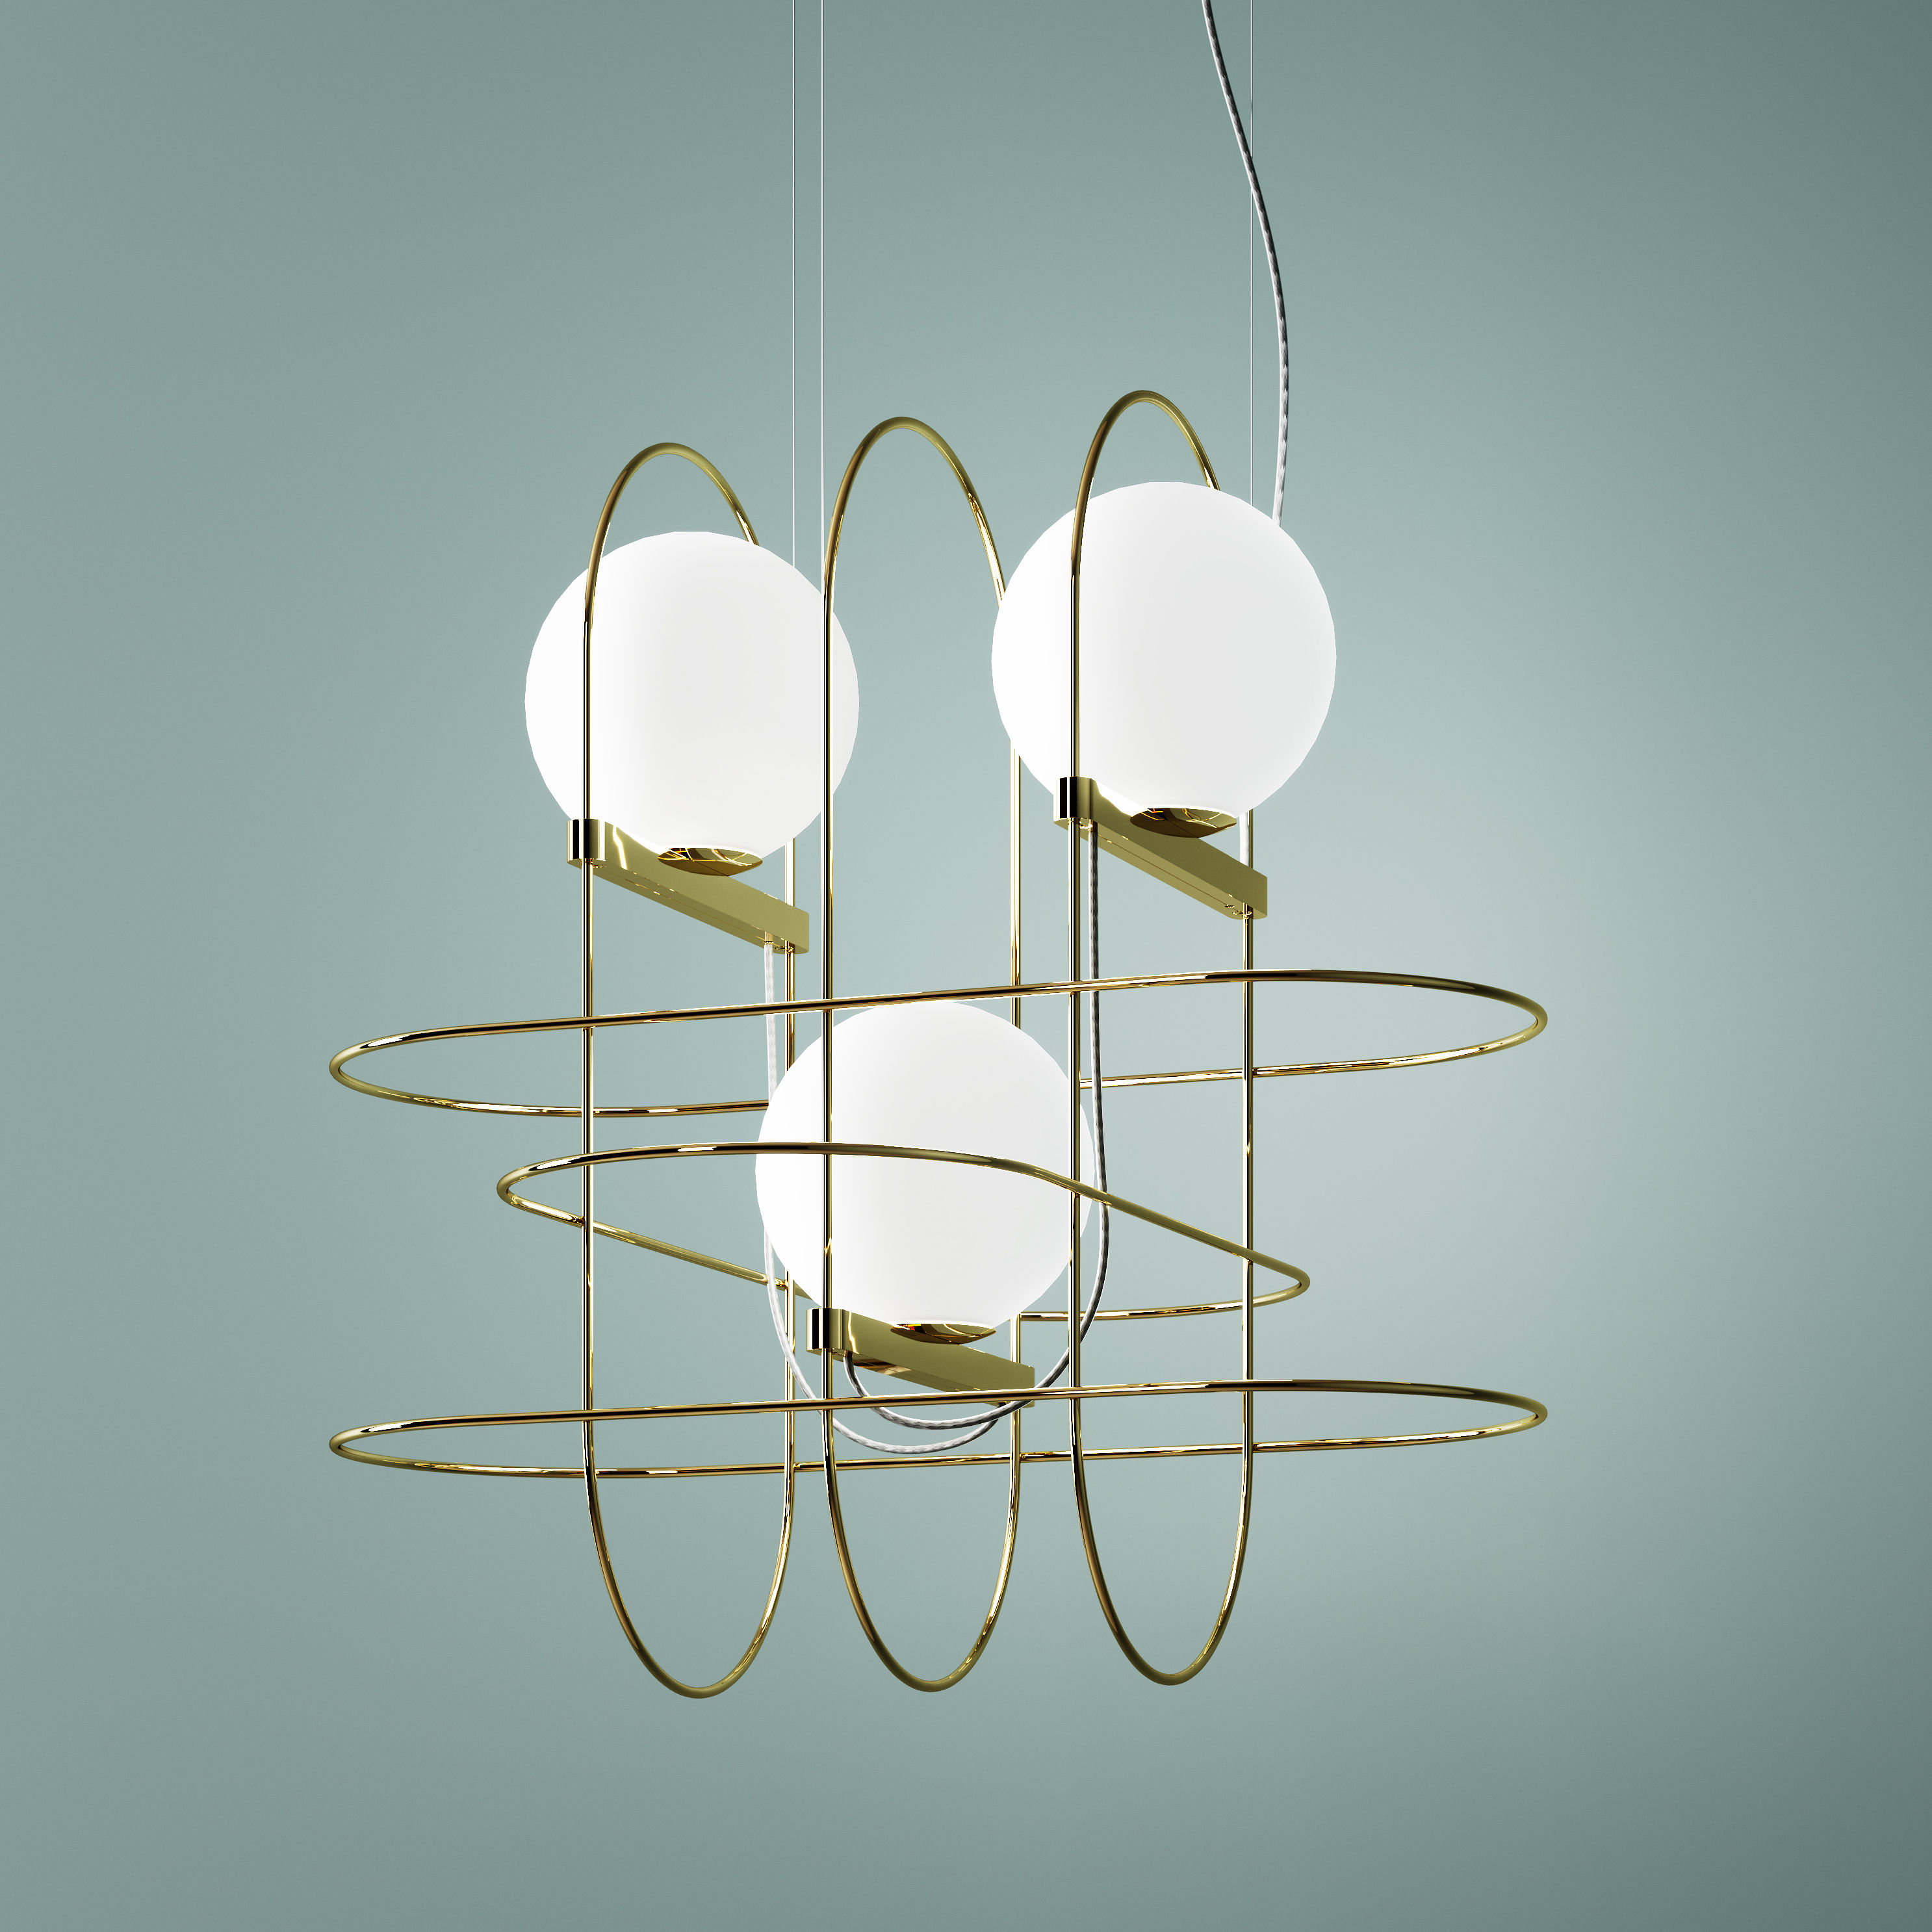 Lighting - Pendant Lighting - Setareh triple Pendant - / LED - W 45 x H 45 cm by Fontana Arte - Gold, White - Metal, Mouth blown glass